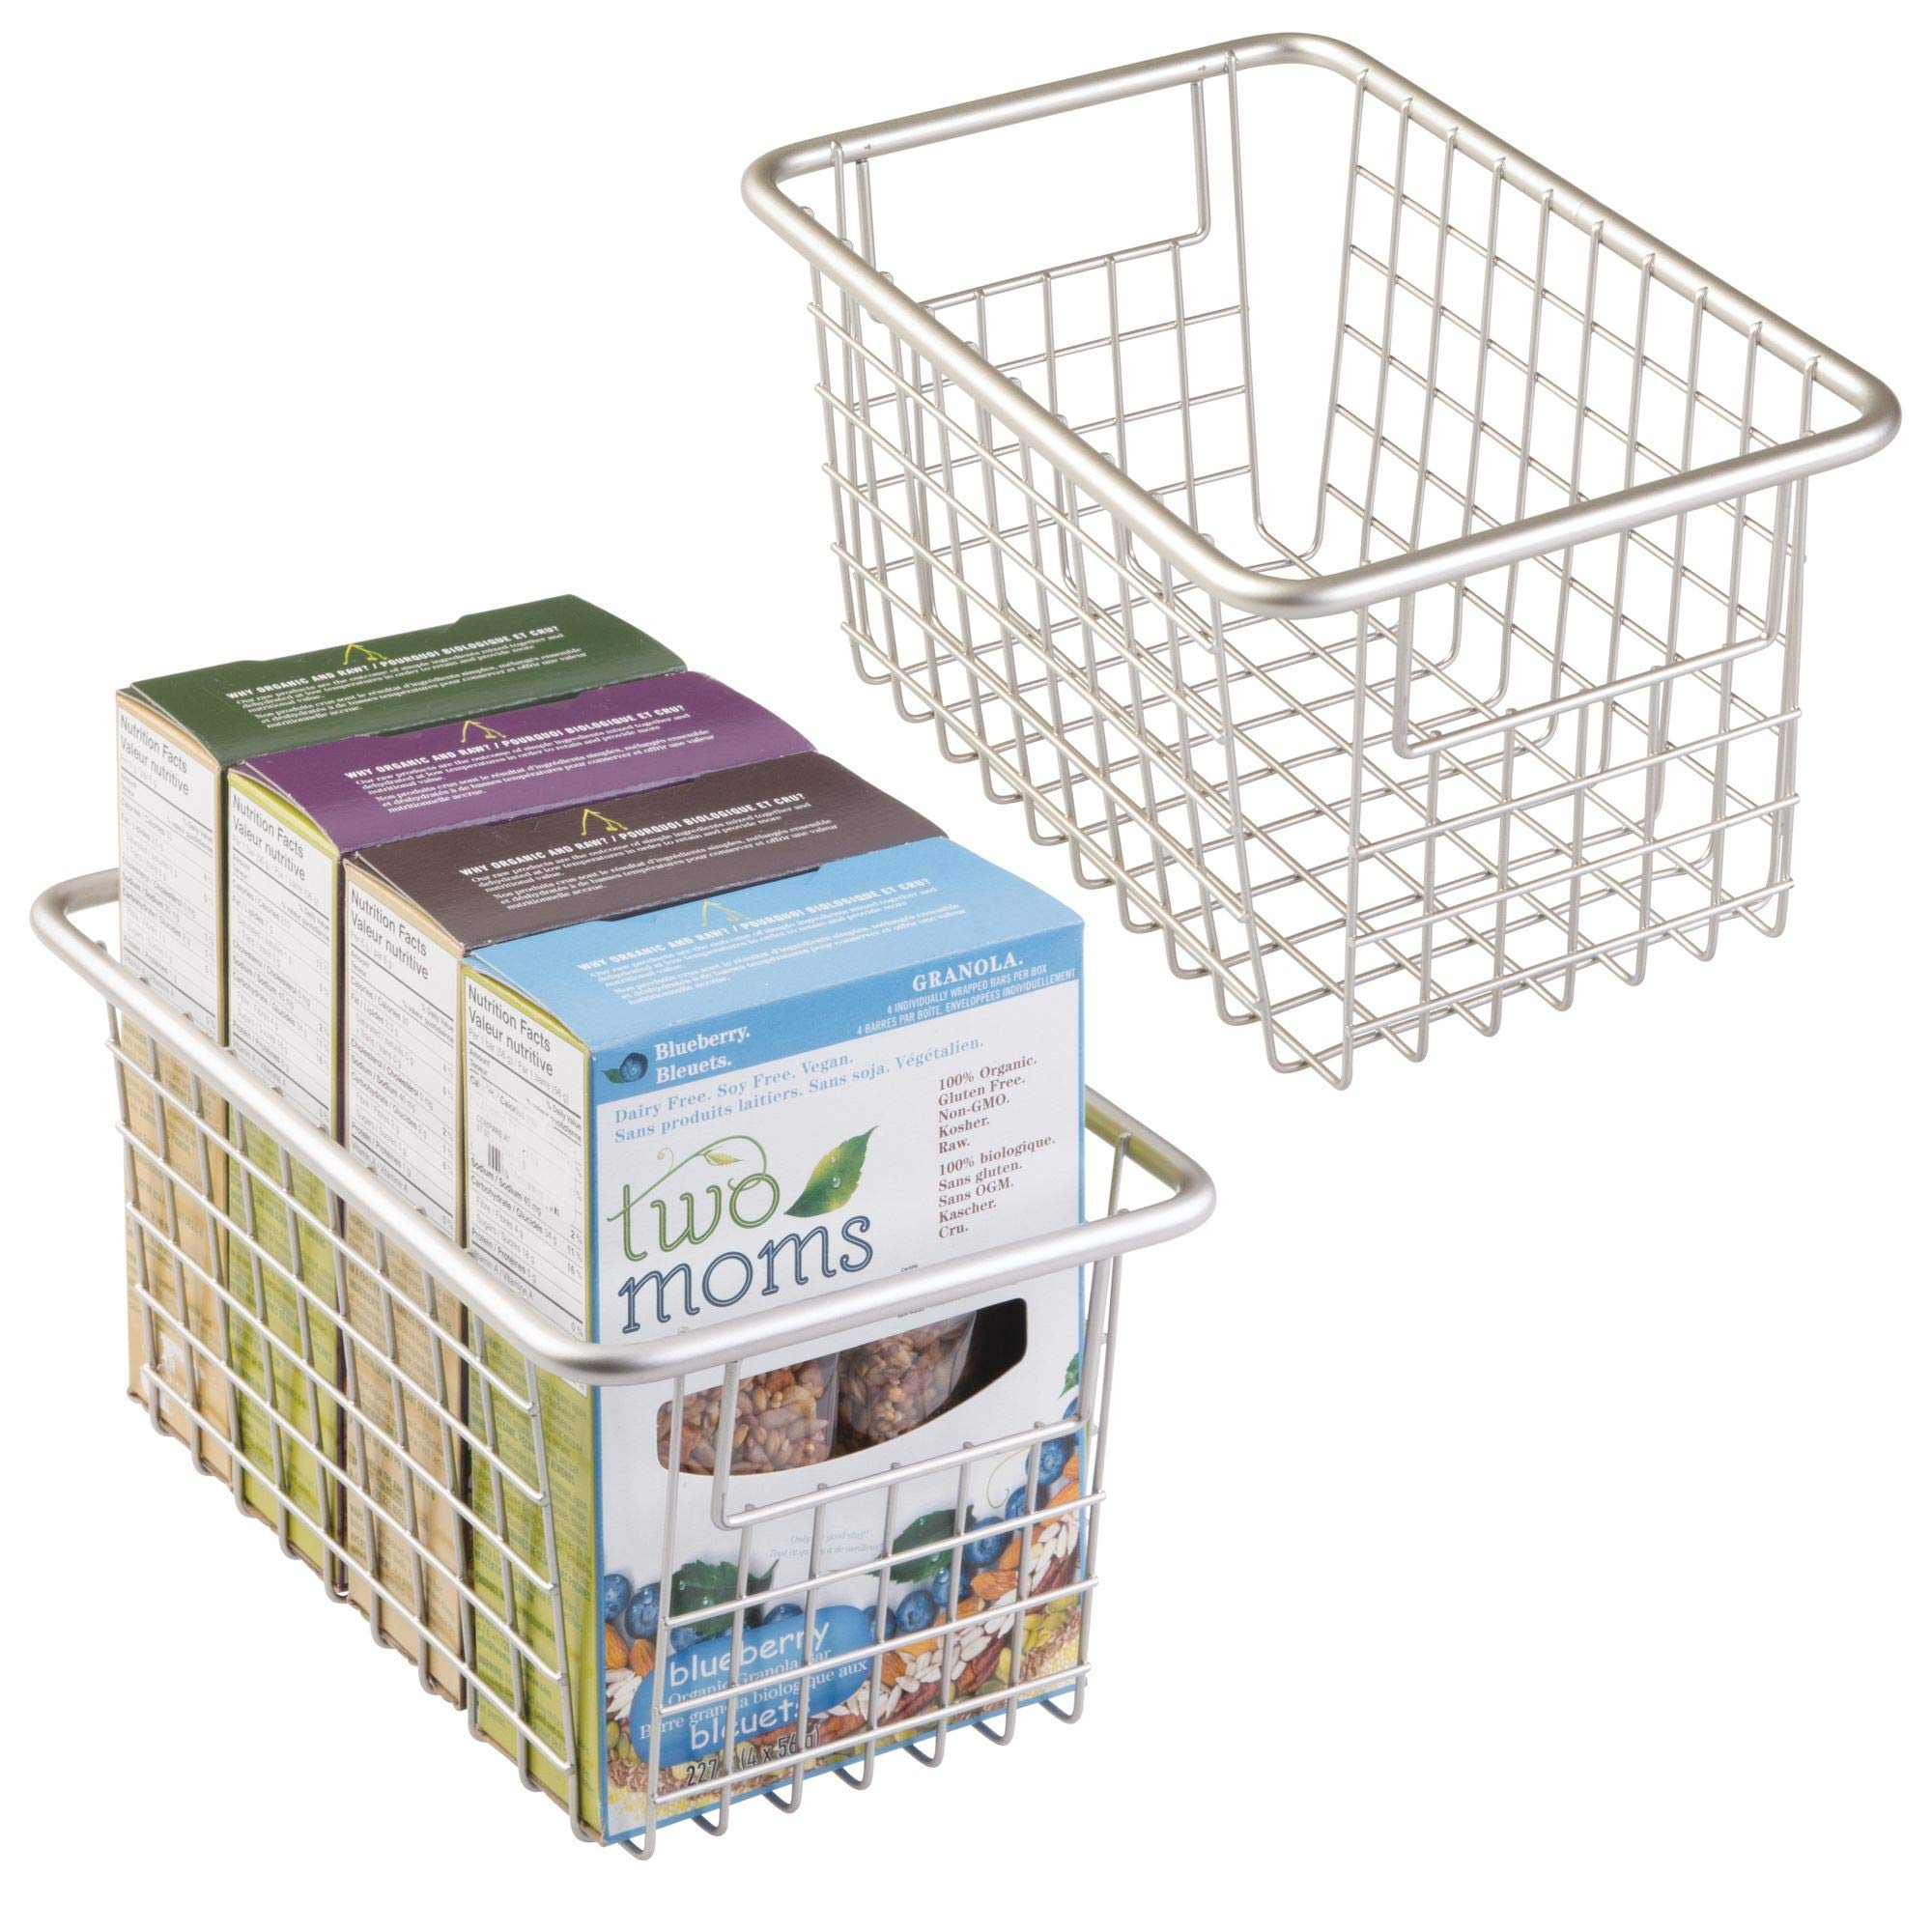 mDesign Household Wire Storage Organizer Bin Basket with Built-in Handles for Kitchen Cabinets, Pantry, Closets, Bedrooms, Bathrooms - Deep, Pack of 2, Satin